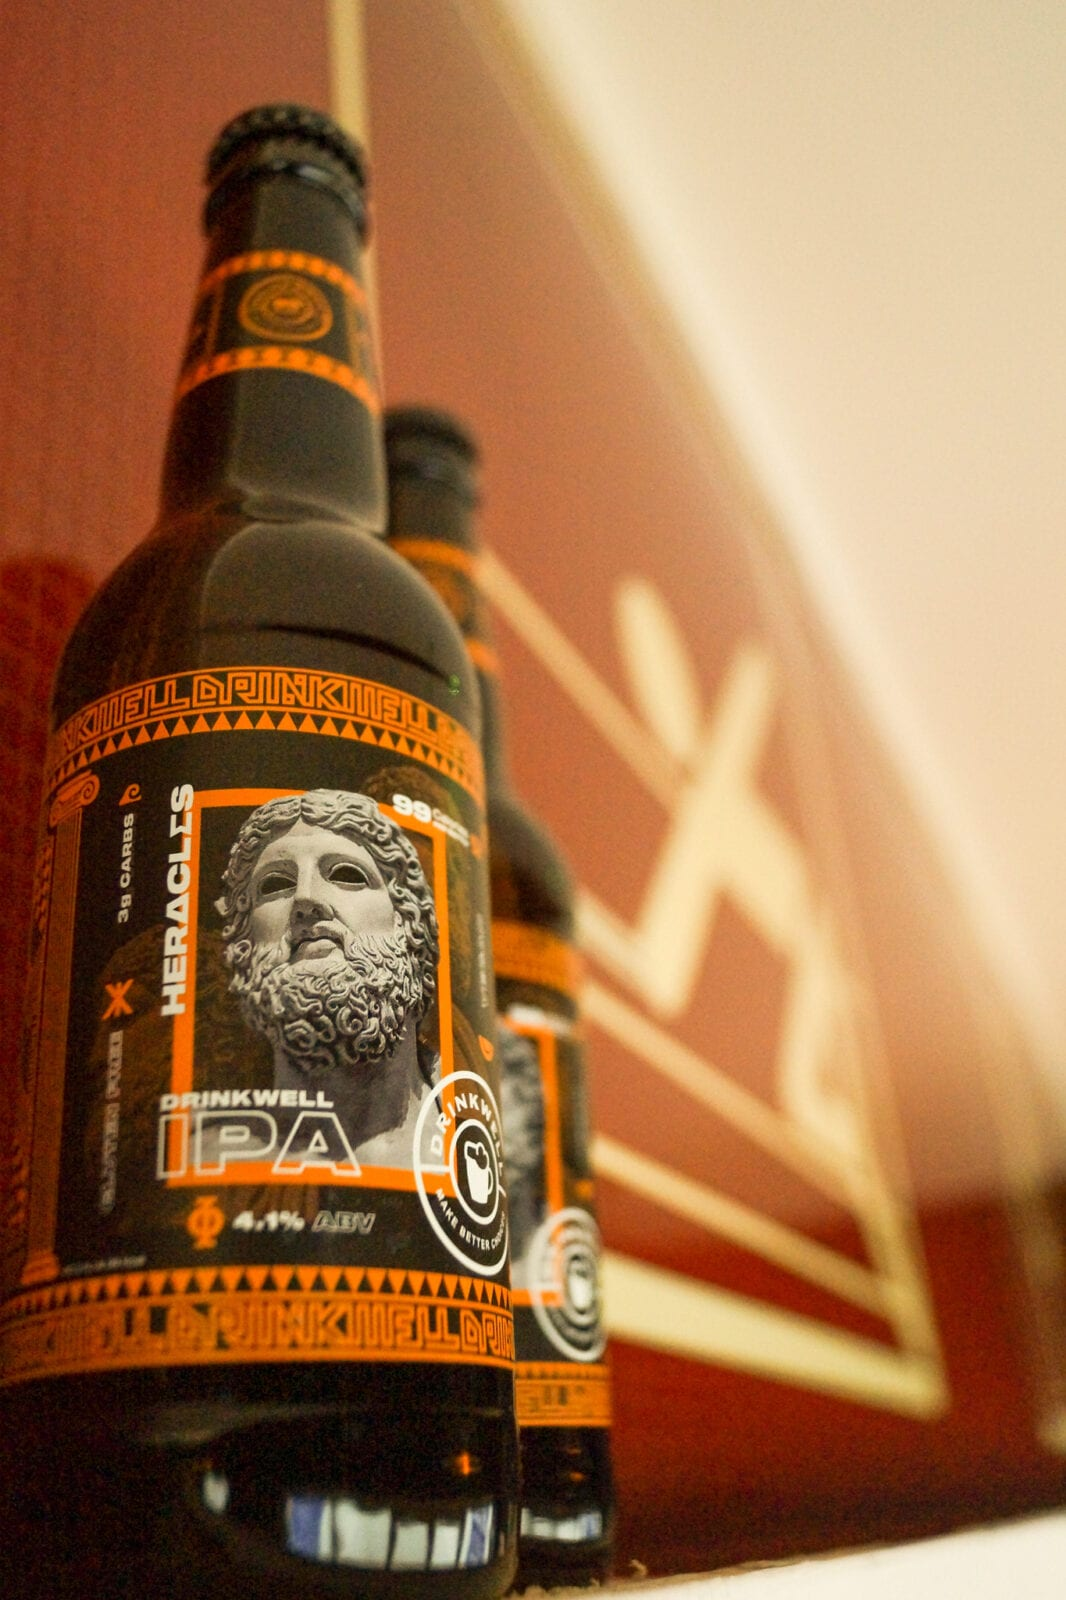 Beer of the Gods: Manchester brand launches game-changing low calorie IPAs, The Manc